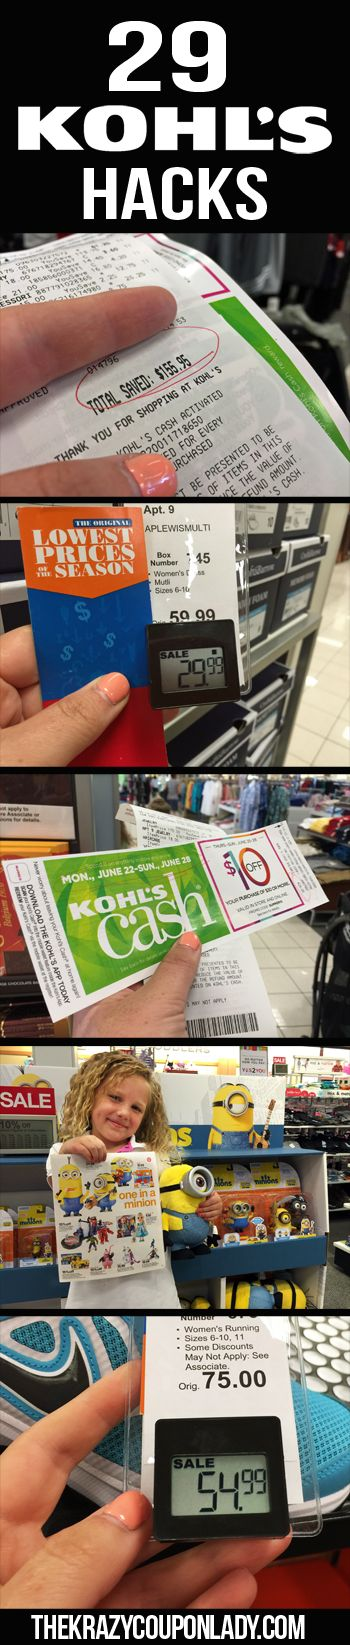 Want to expand your extreme couponing into retail? Kohl's is the only store where saving an average of 60% or more is...